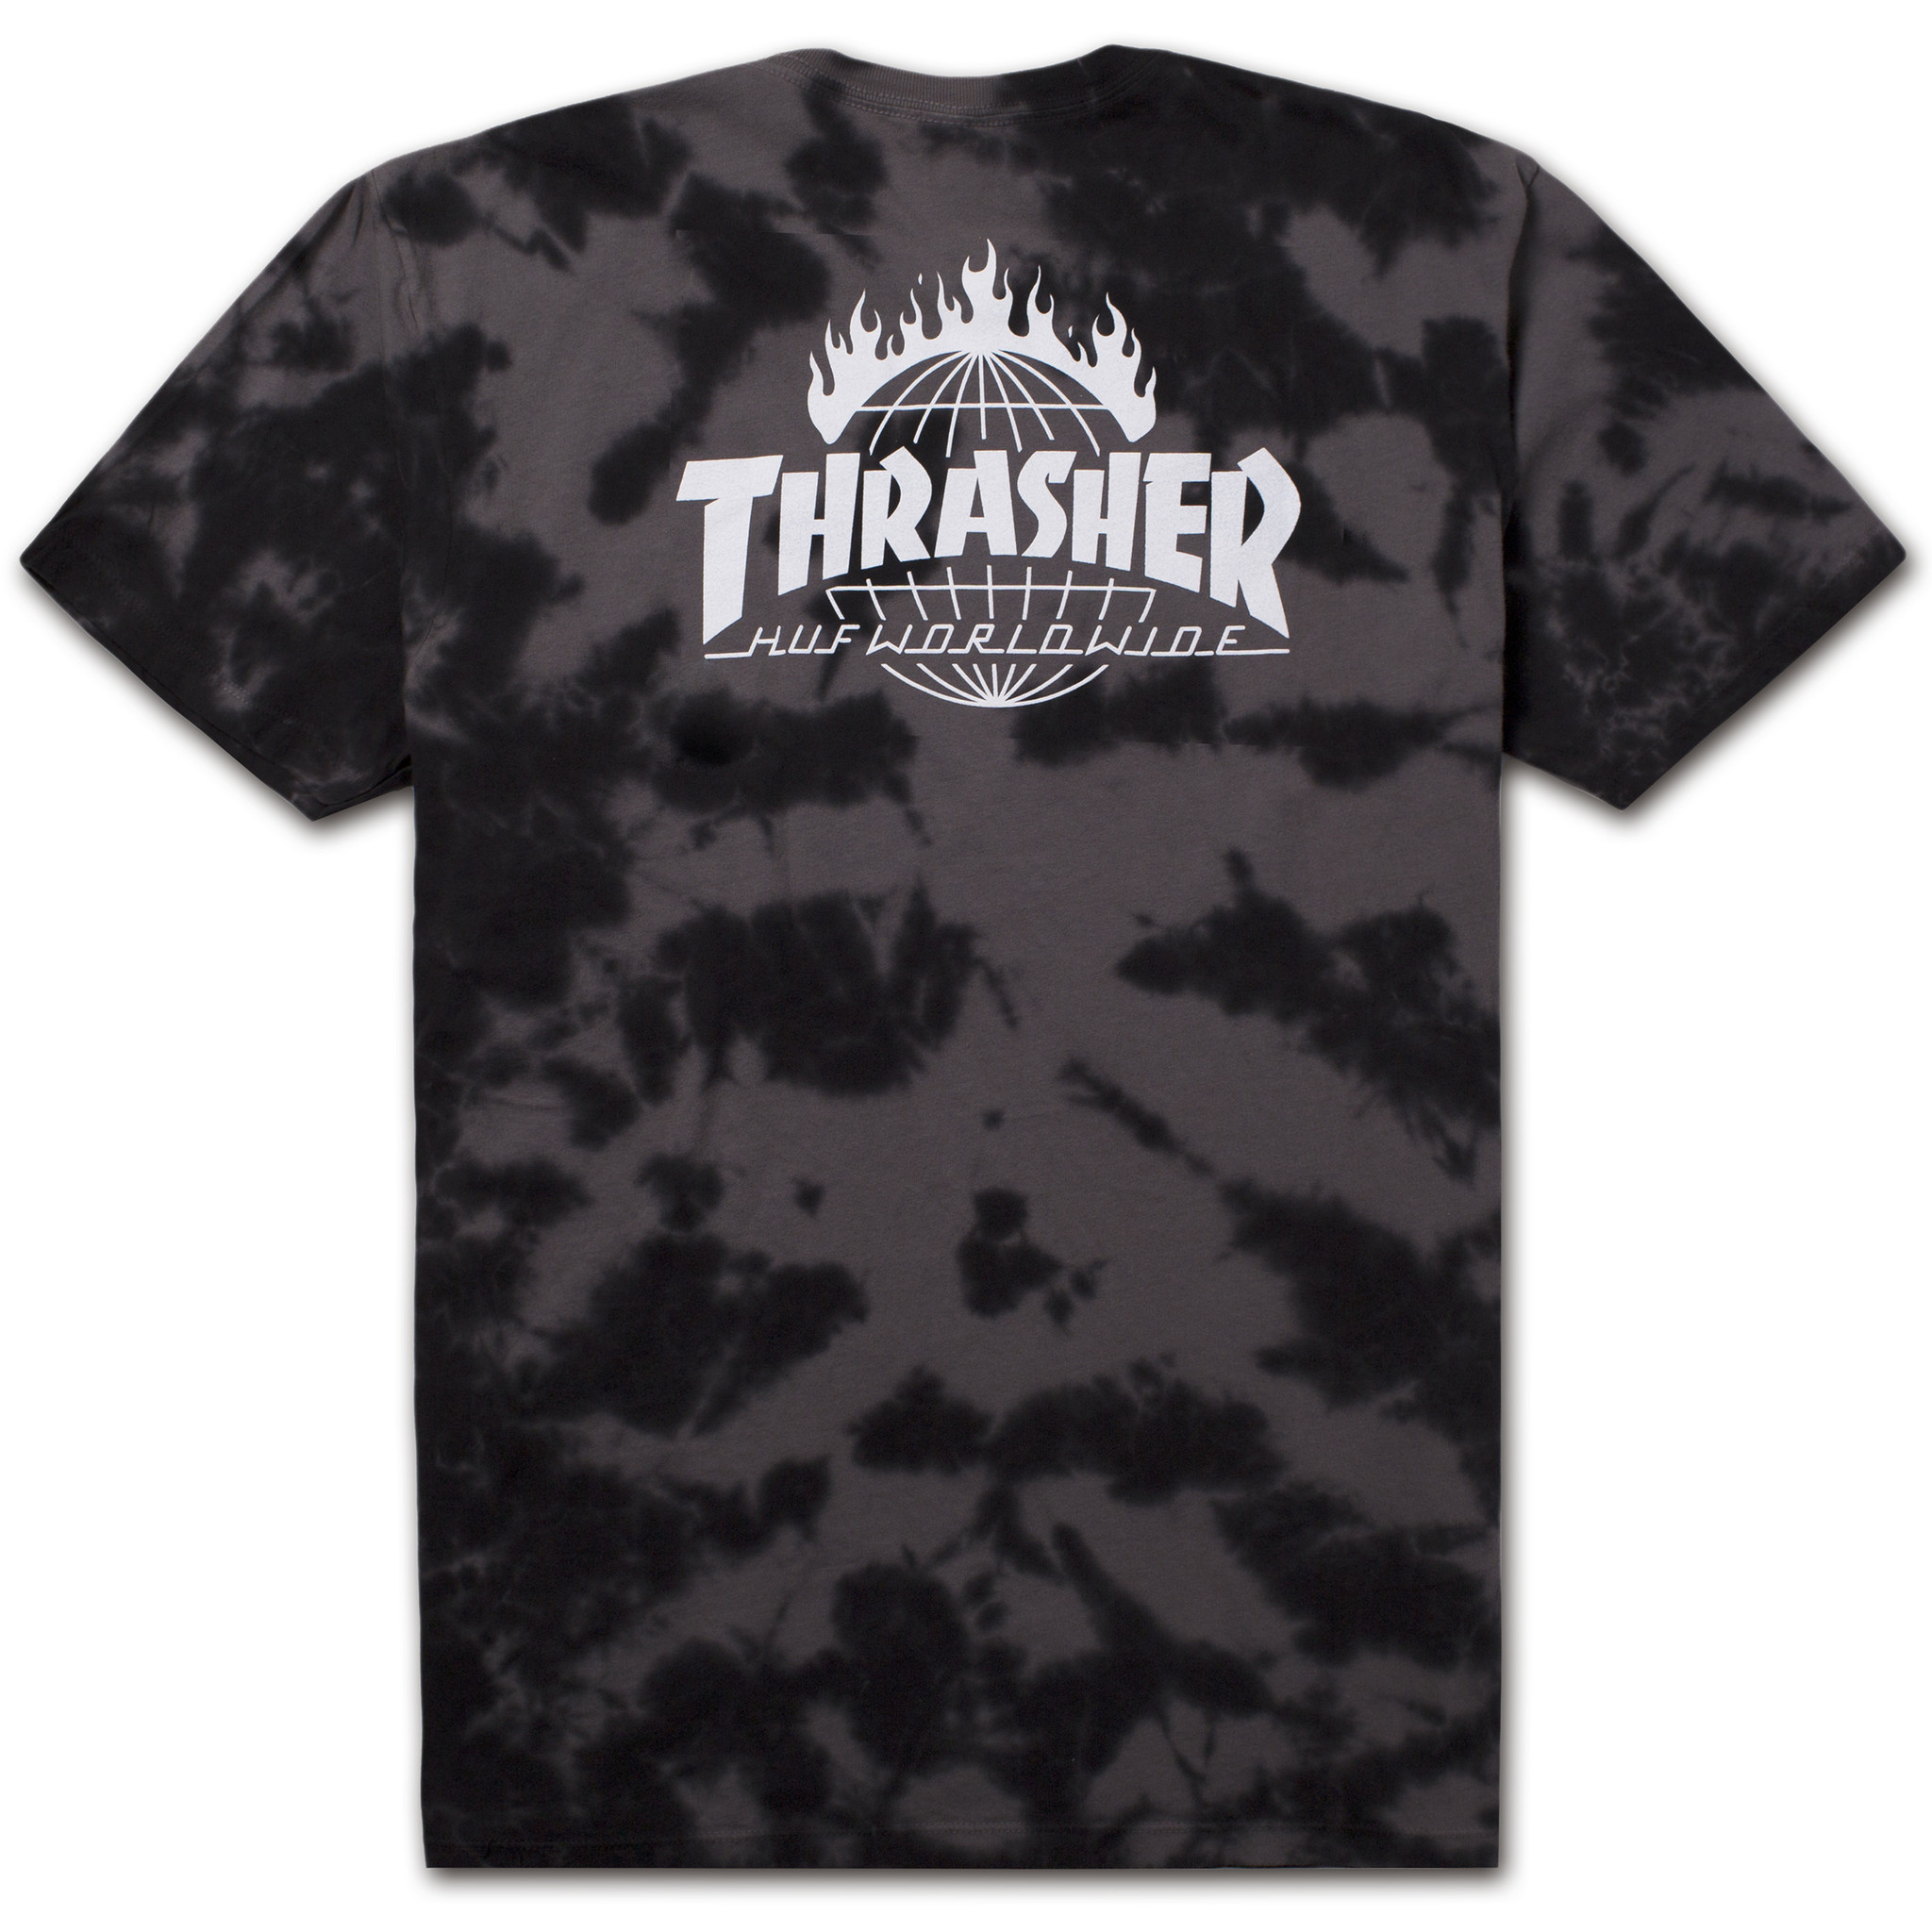 Thrasher tds crystal wash tee black ts65m04 black 02